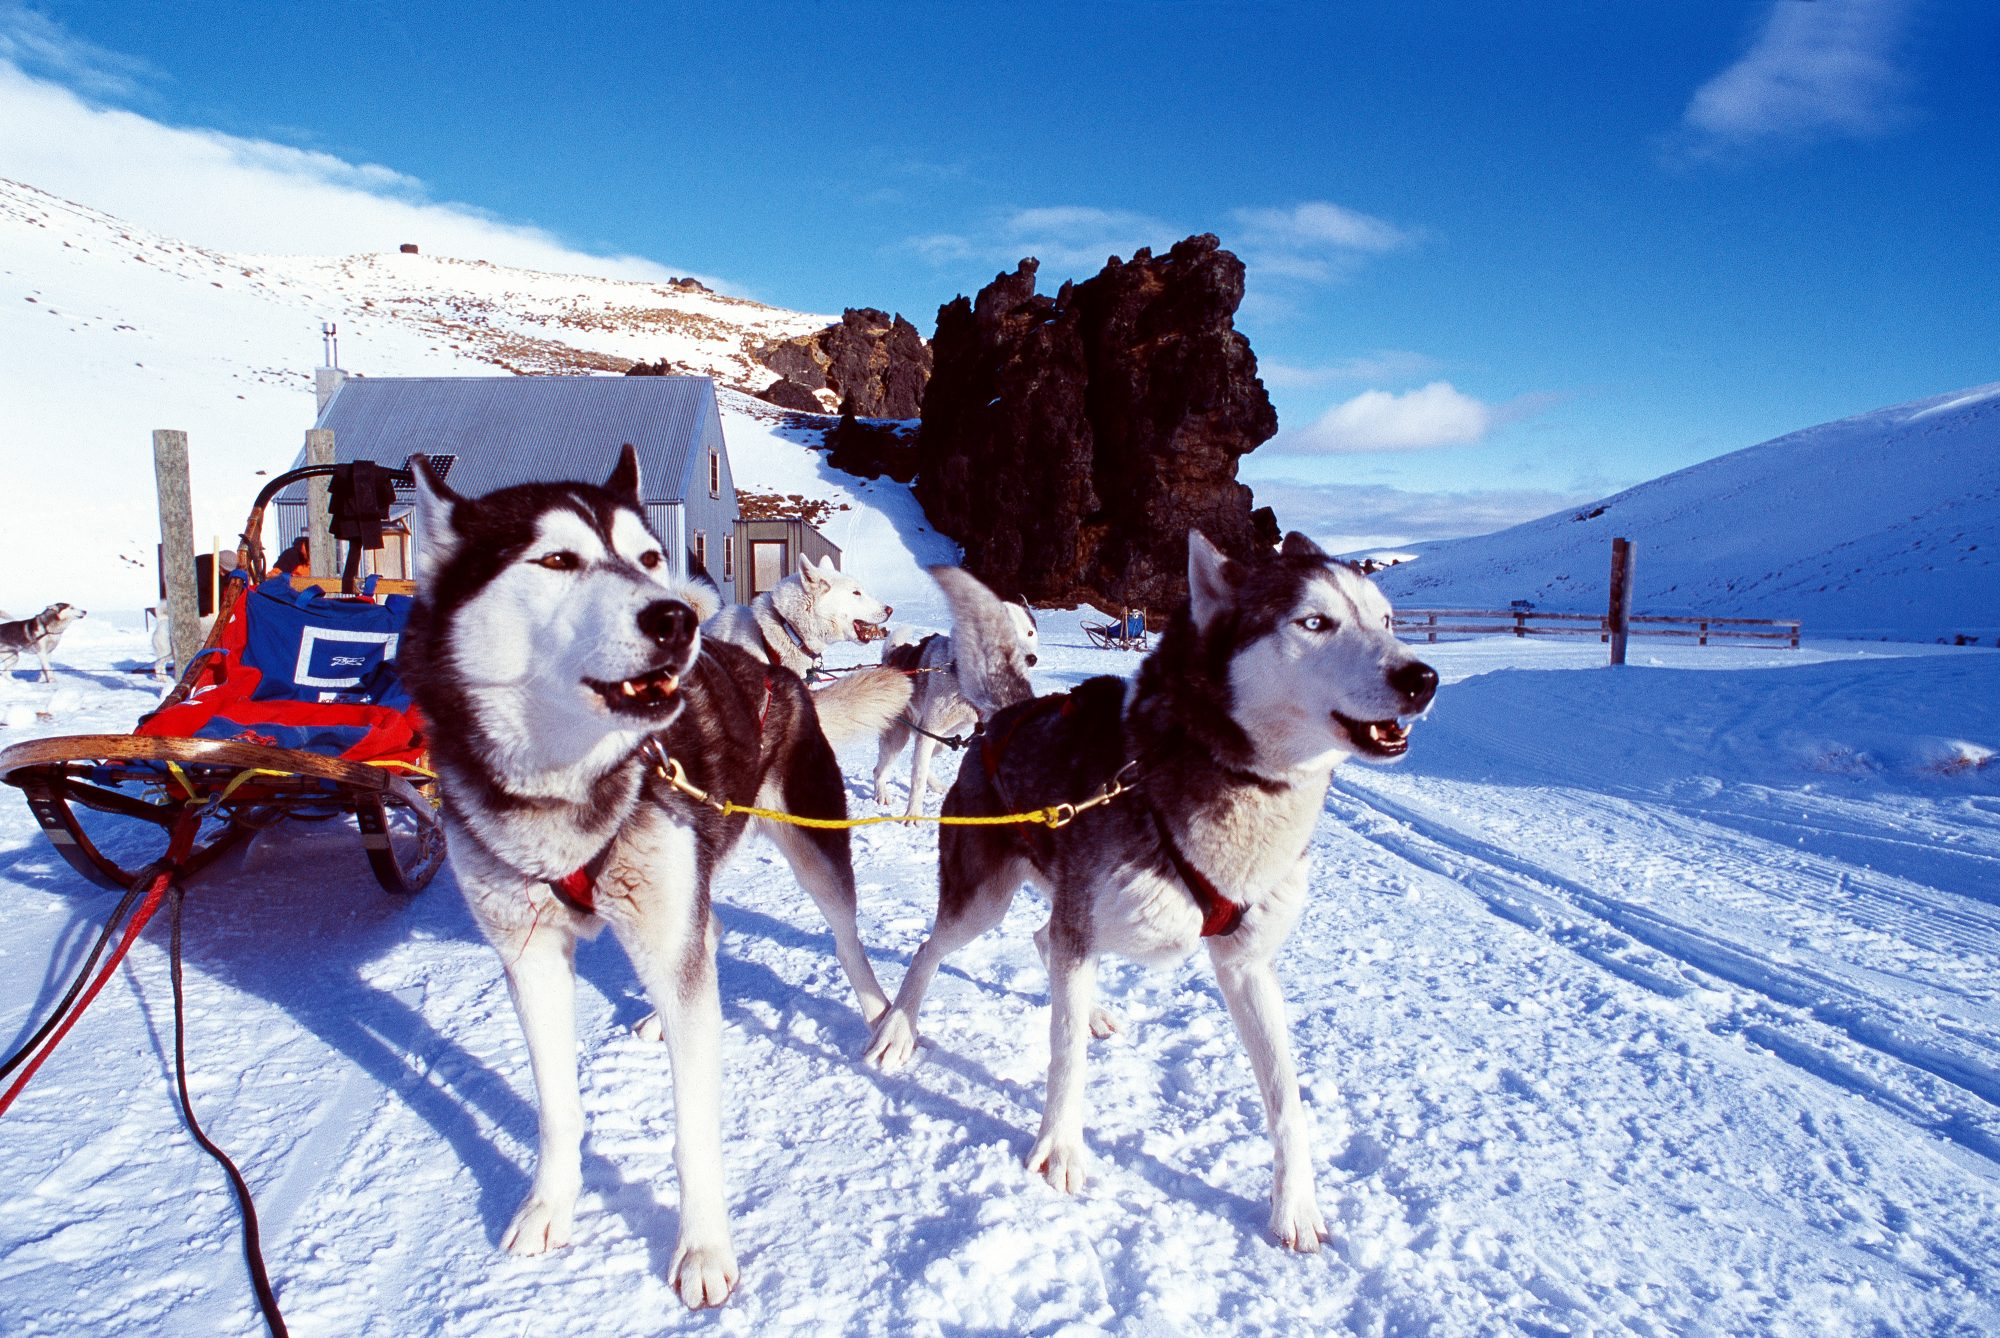 """Hooked up and eager to go, Ray Holliday's commercial sledding team of Siberian huskies wait outside the Meadow Lee Hut at the Snow Farm during an overnight trip. Having run the day before, these dogs are generally quieter and easier to handle than """"weekend warriors""""."""